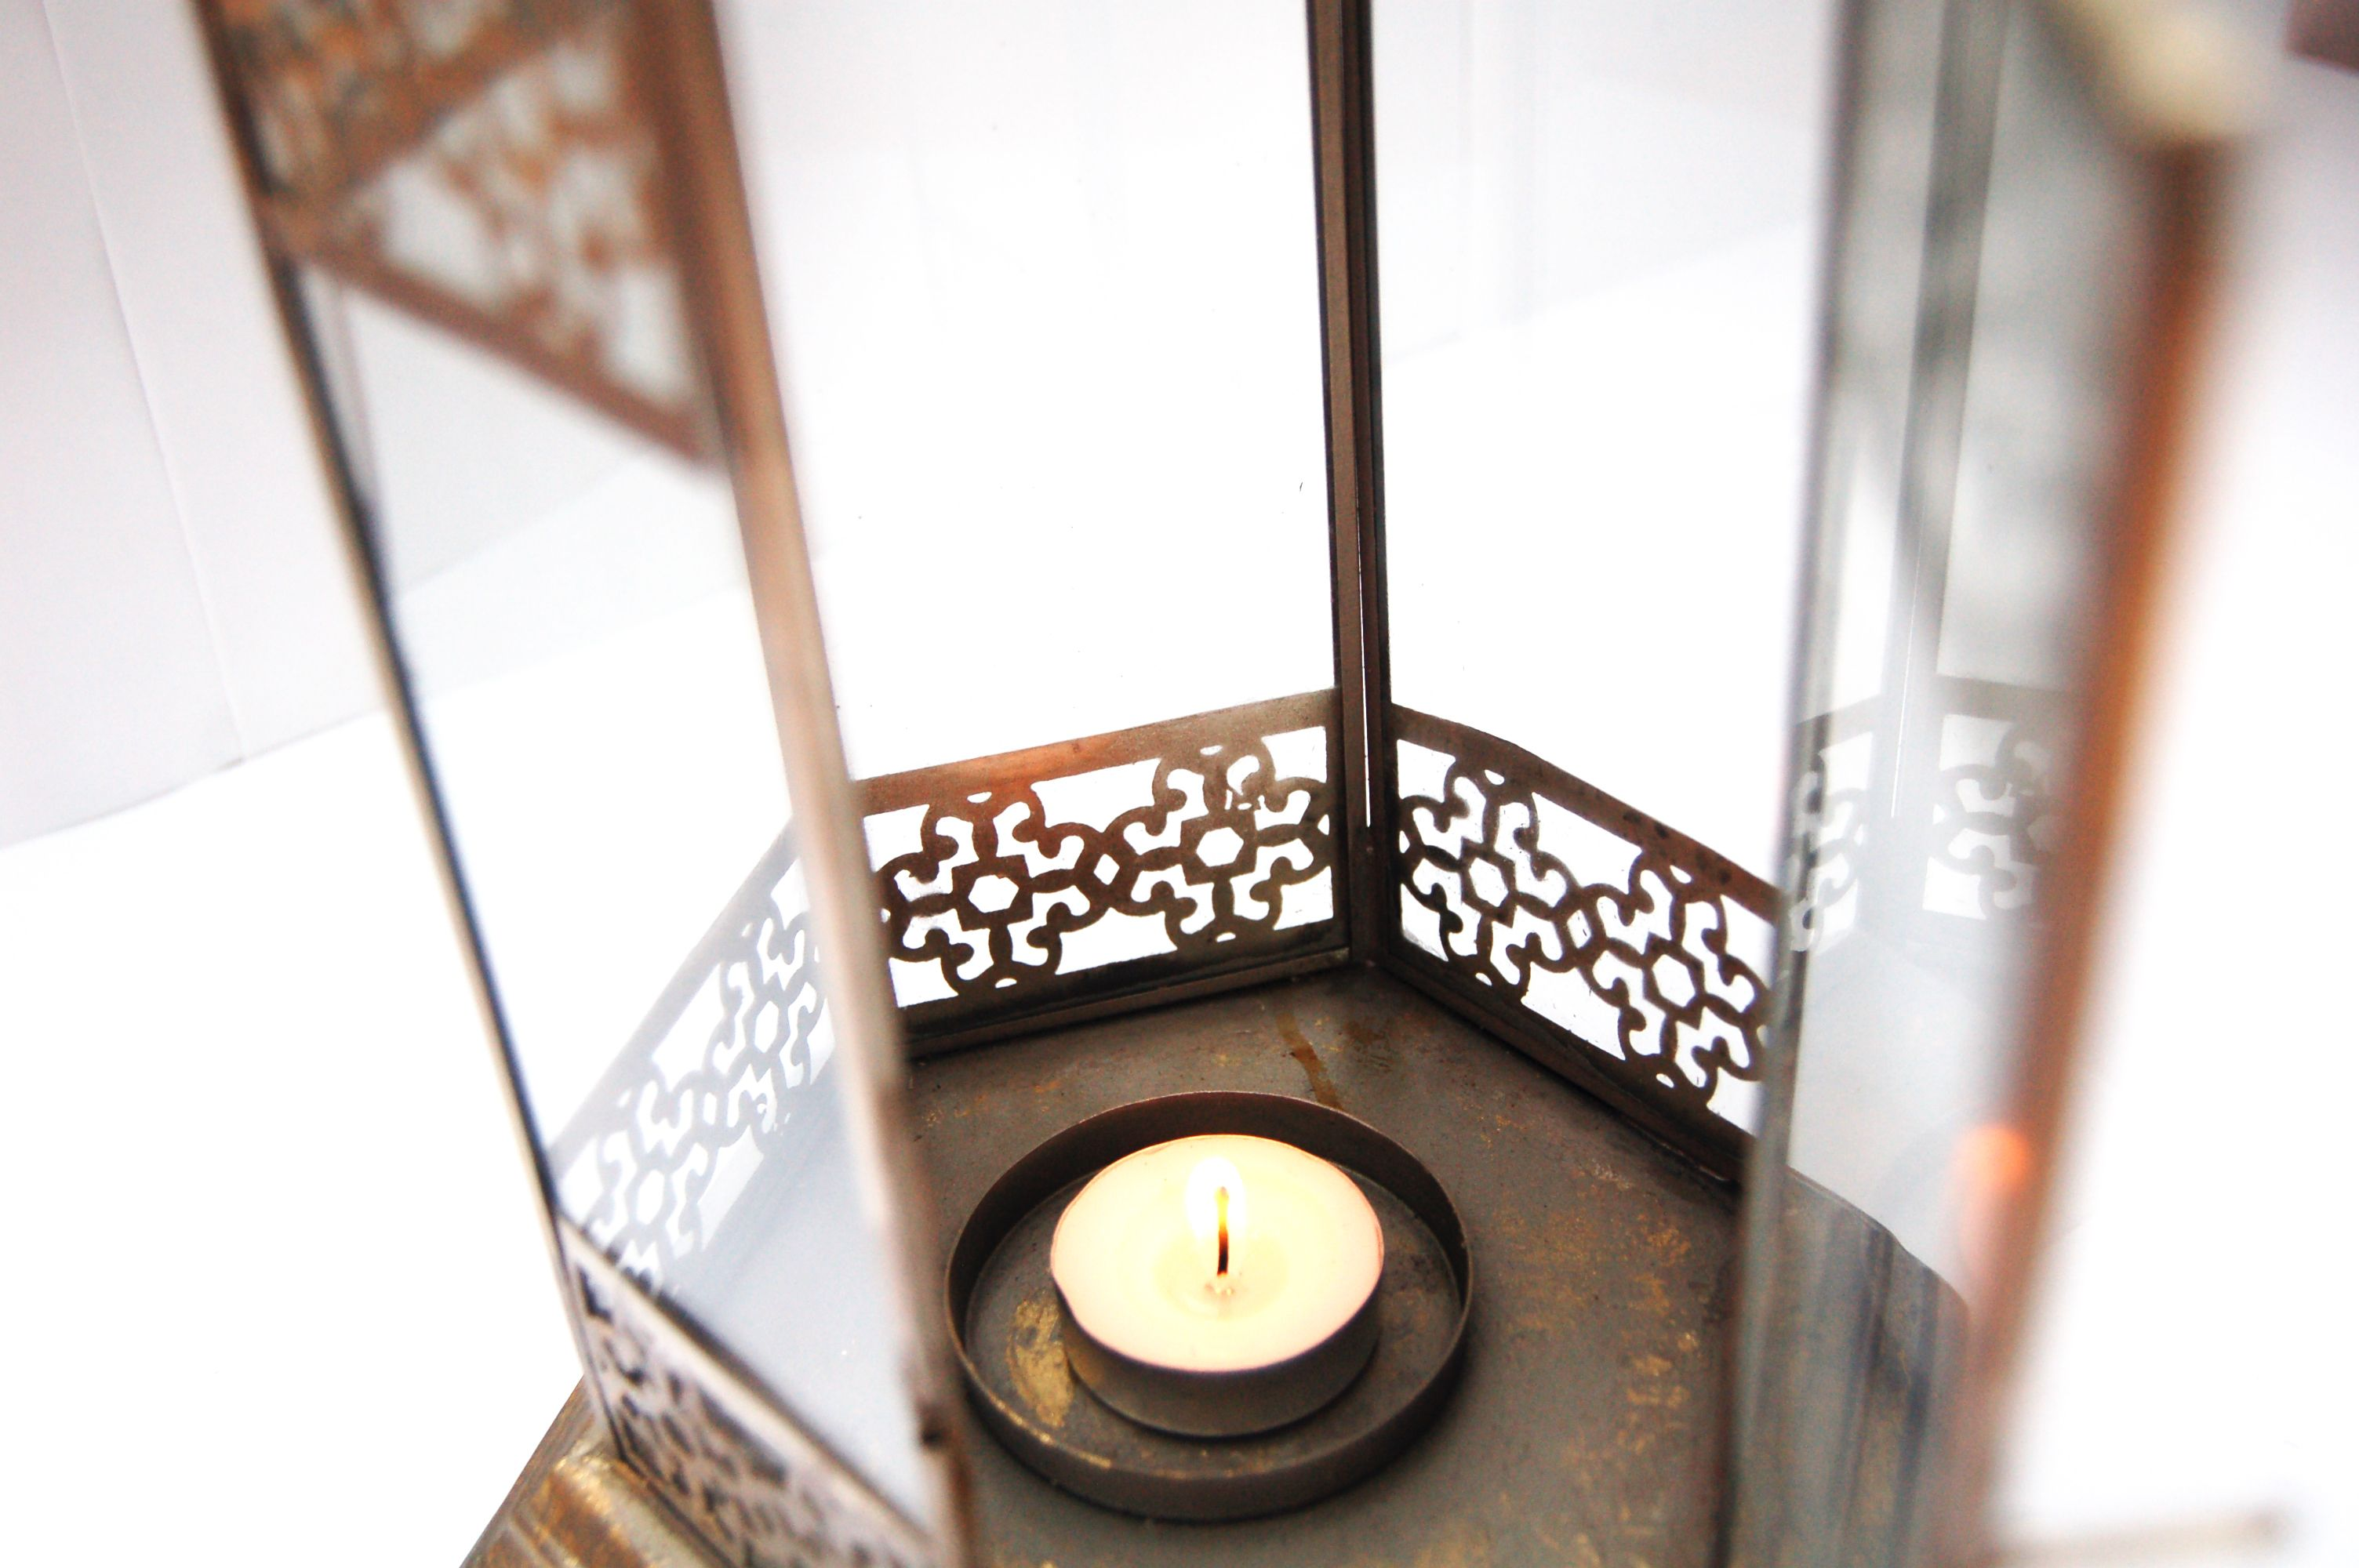 Light up your home with this beautifully crafted gold leaf lantern with stunning cut out design.     www.revive-me.com